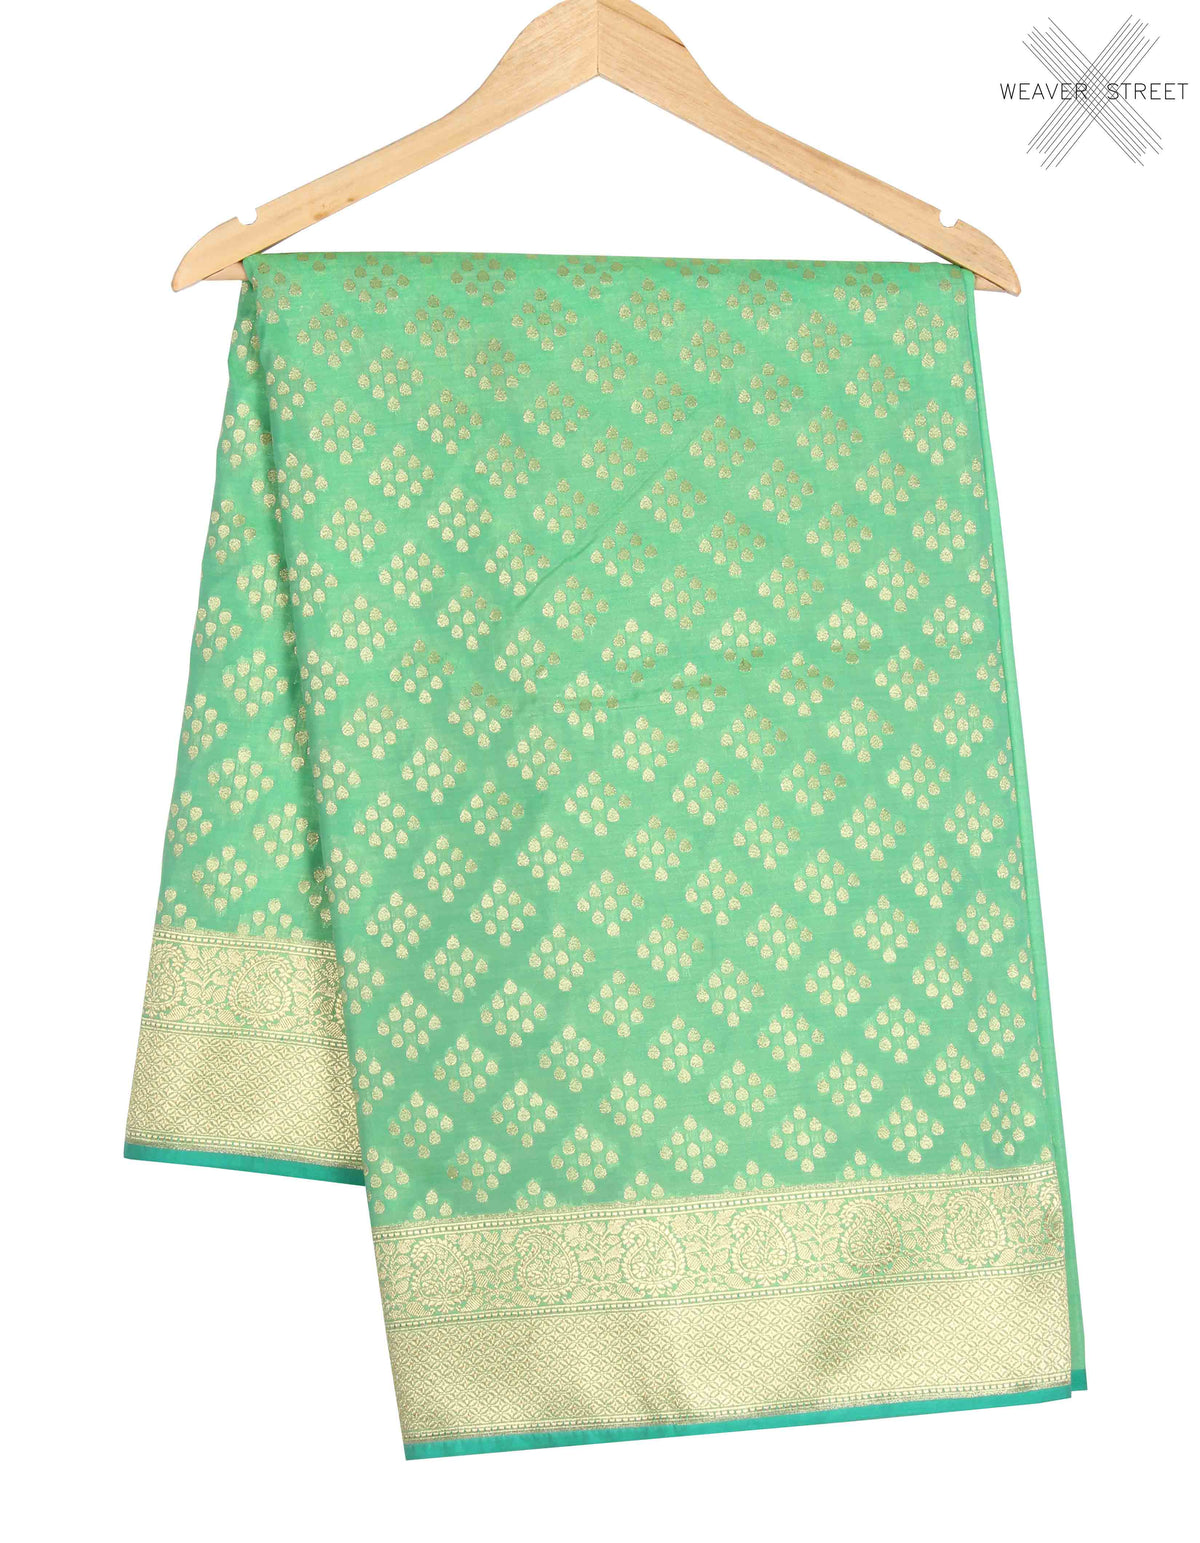 Green Banarasi Saree with drop motifs (1) main